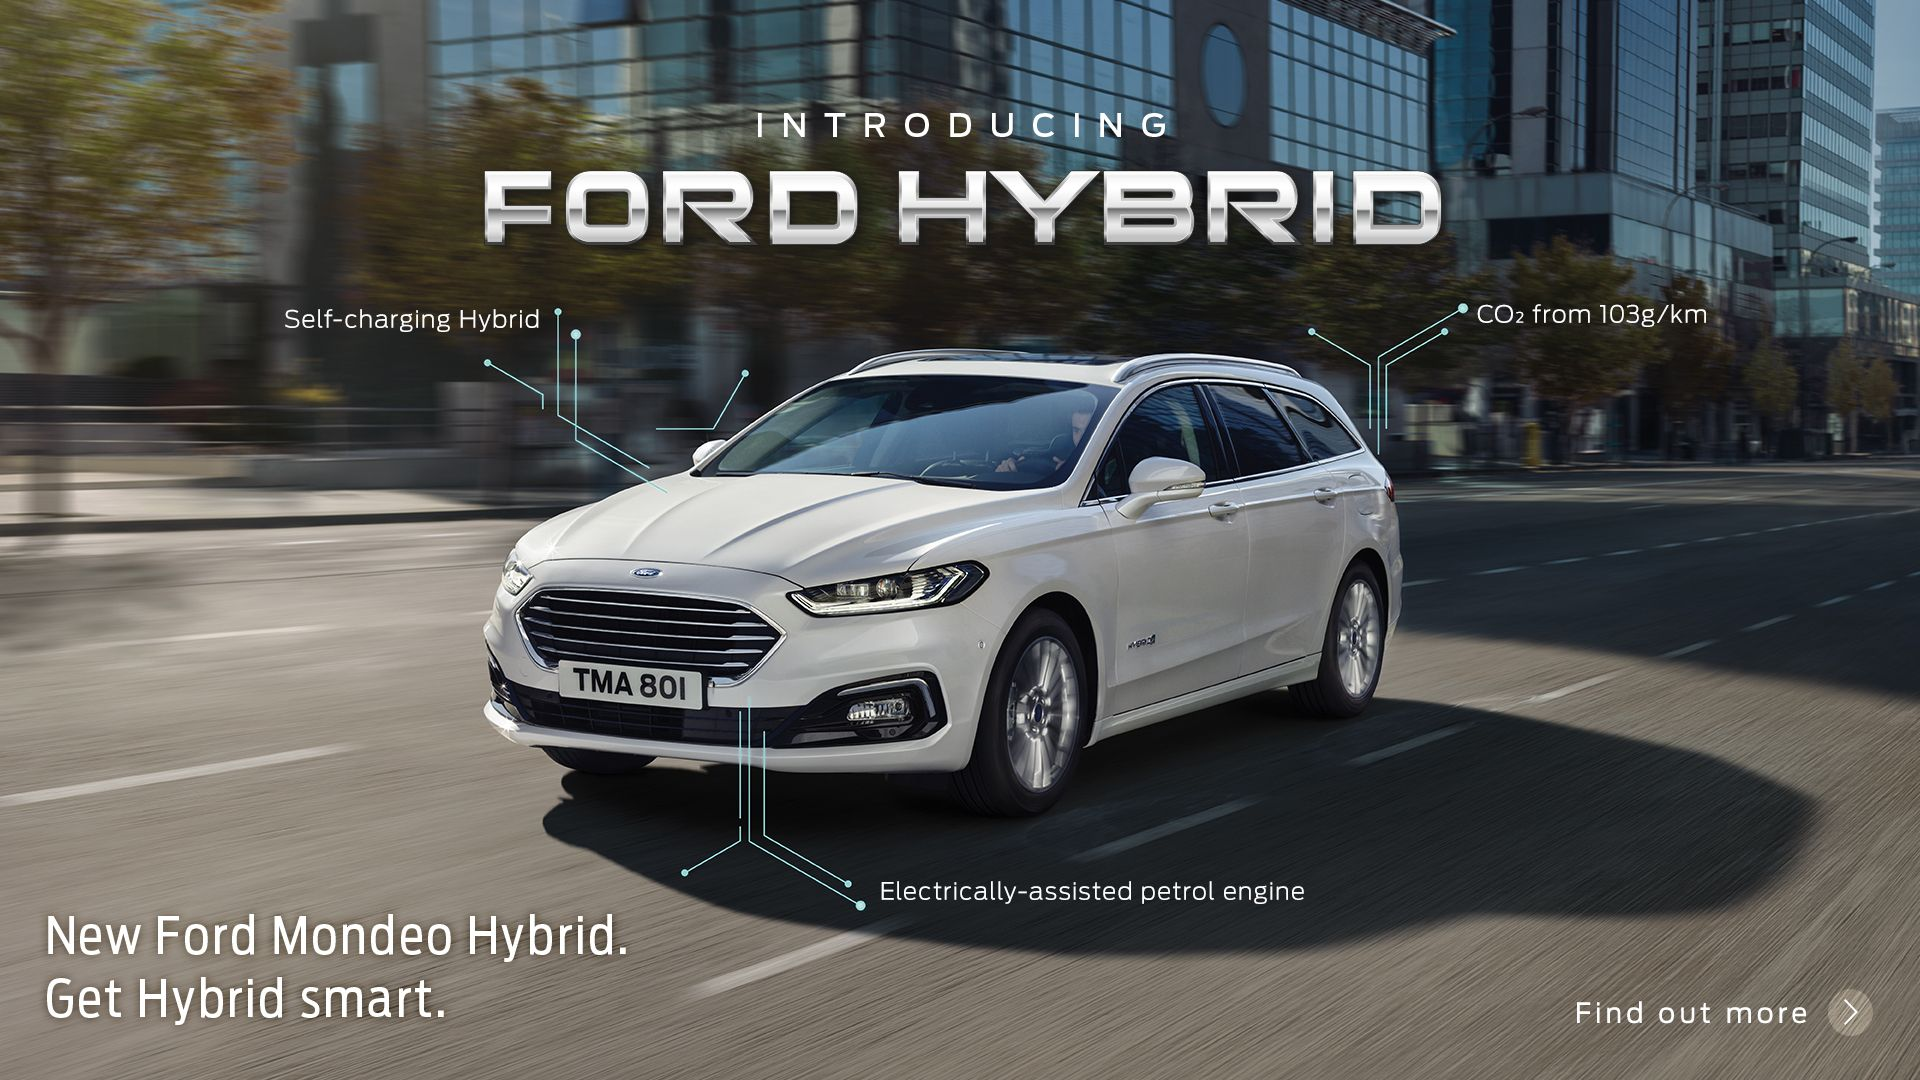 Mondeo Hybrid Call us for more details